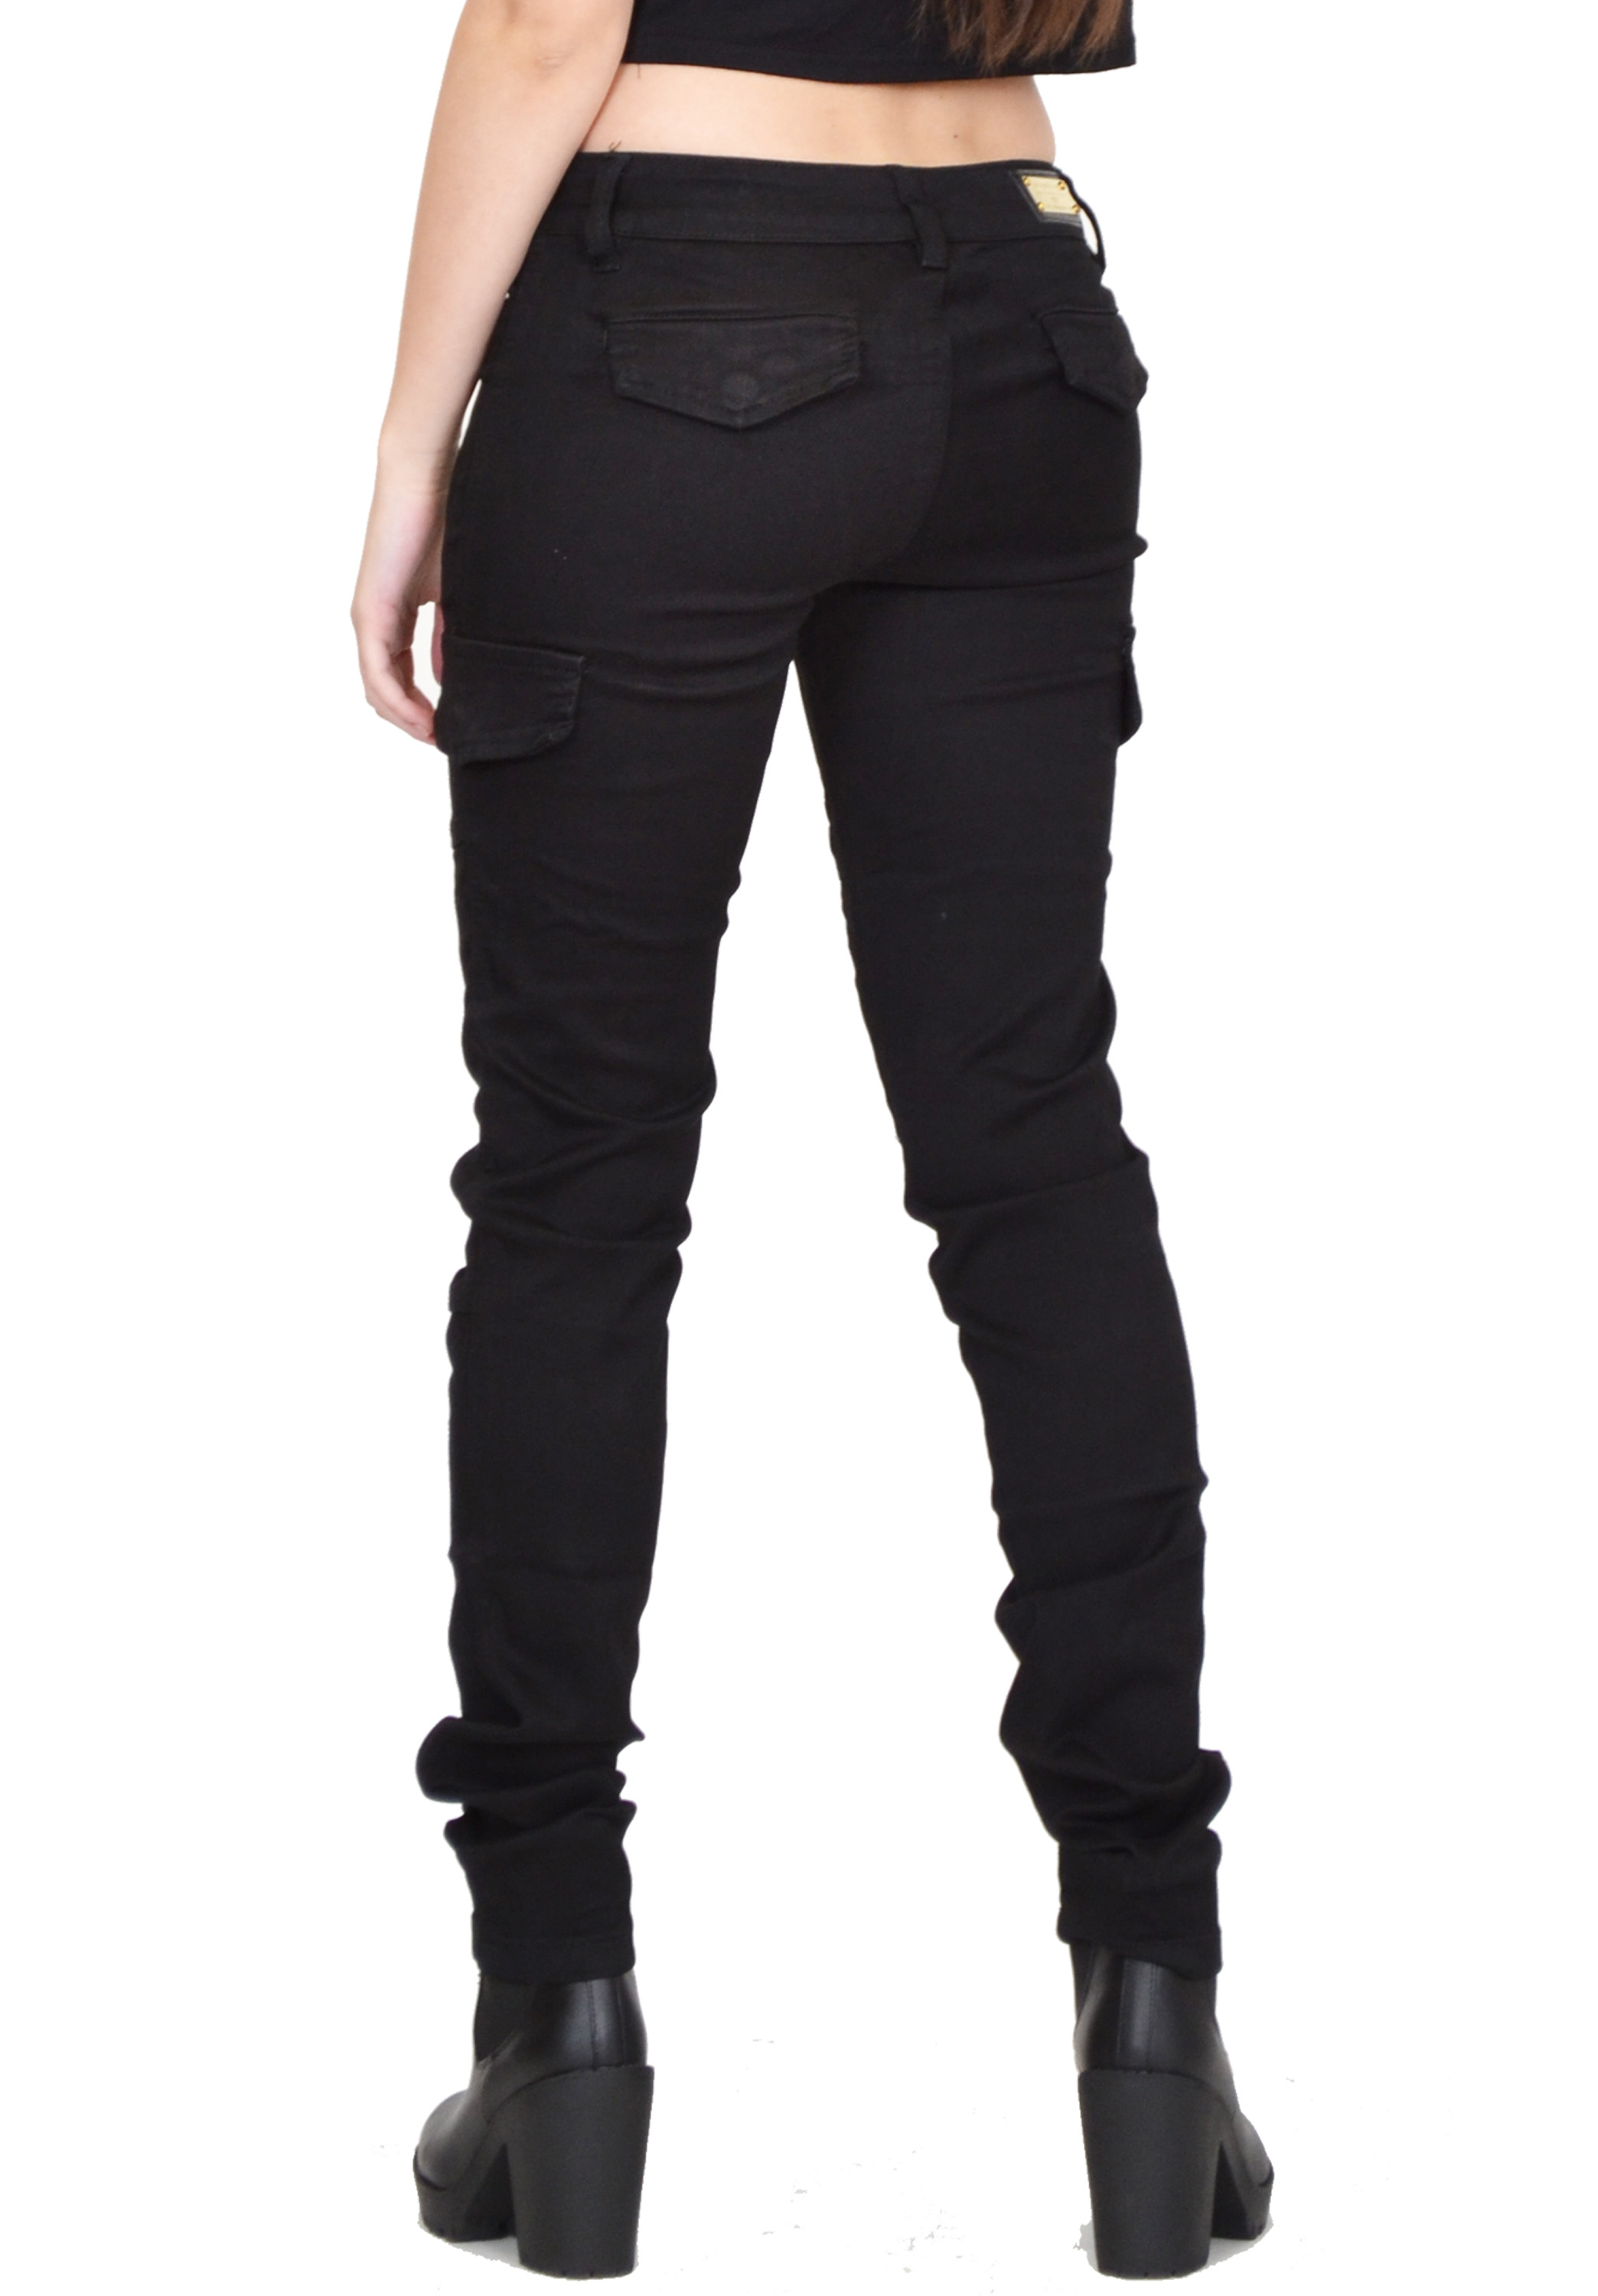 Simple New Ladies Womens Black Slim Fitted Stretch Combat Pants Skinny Cargo